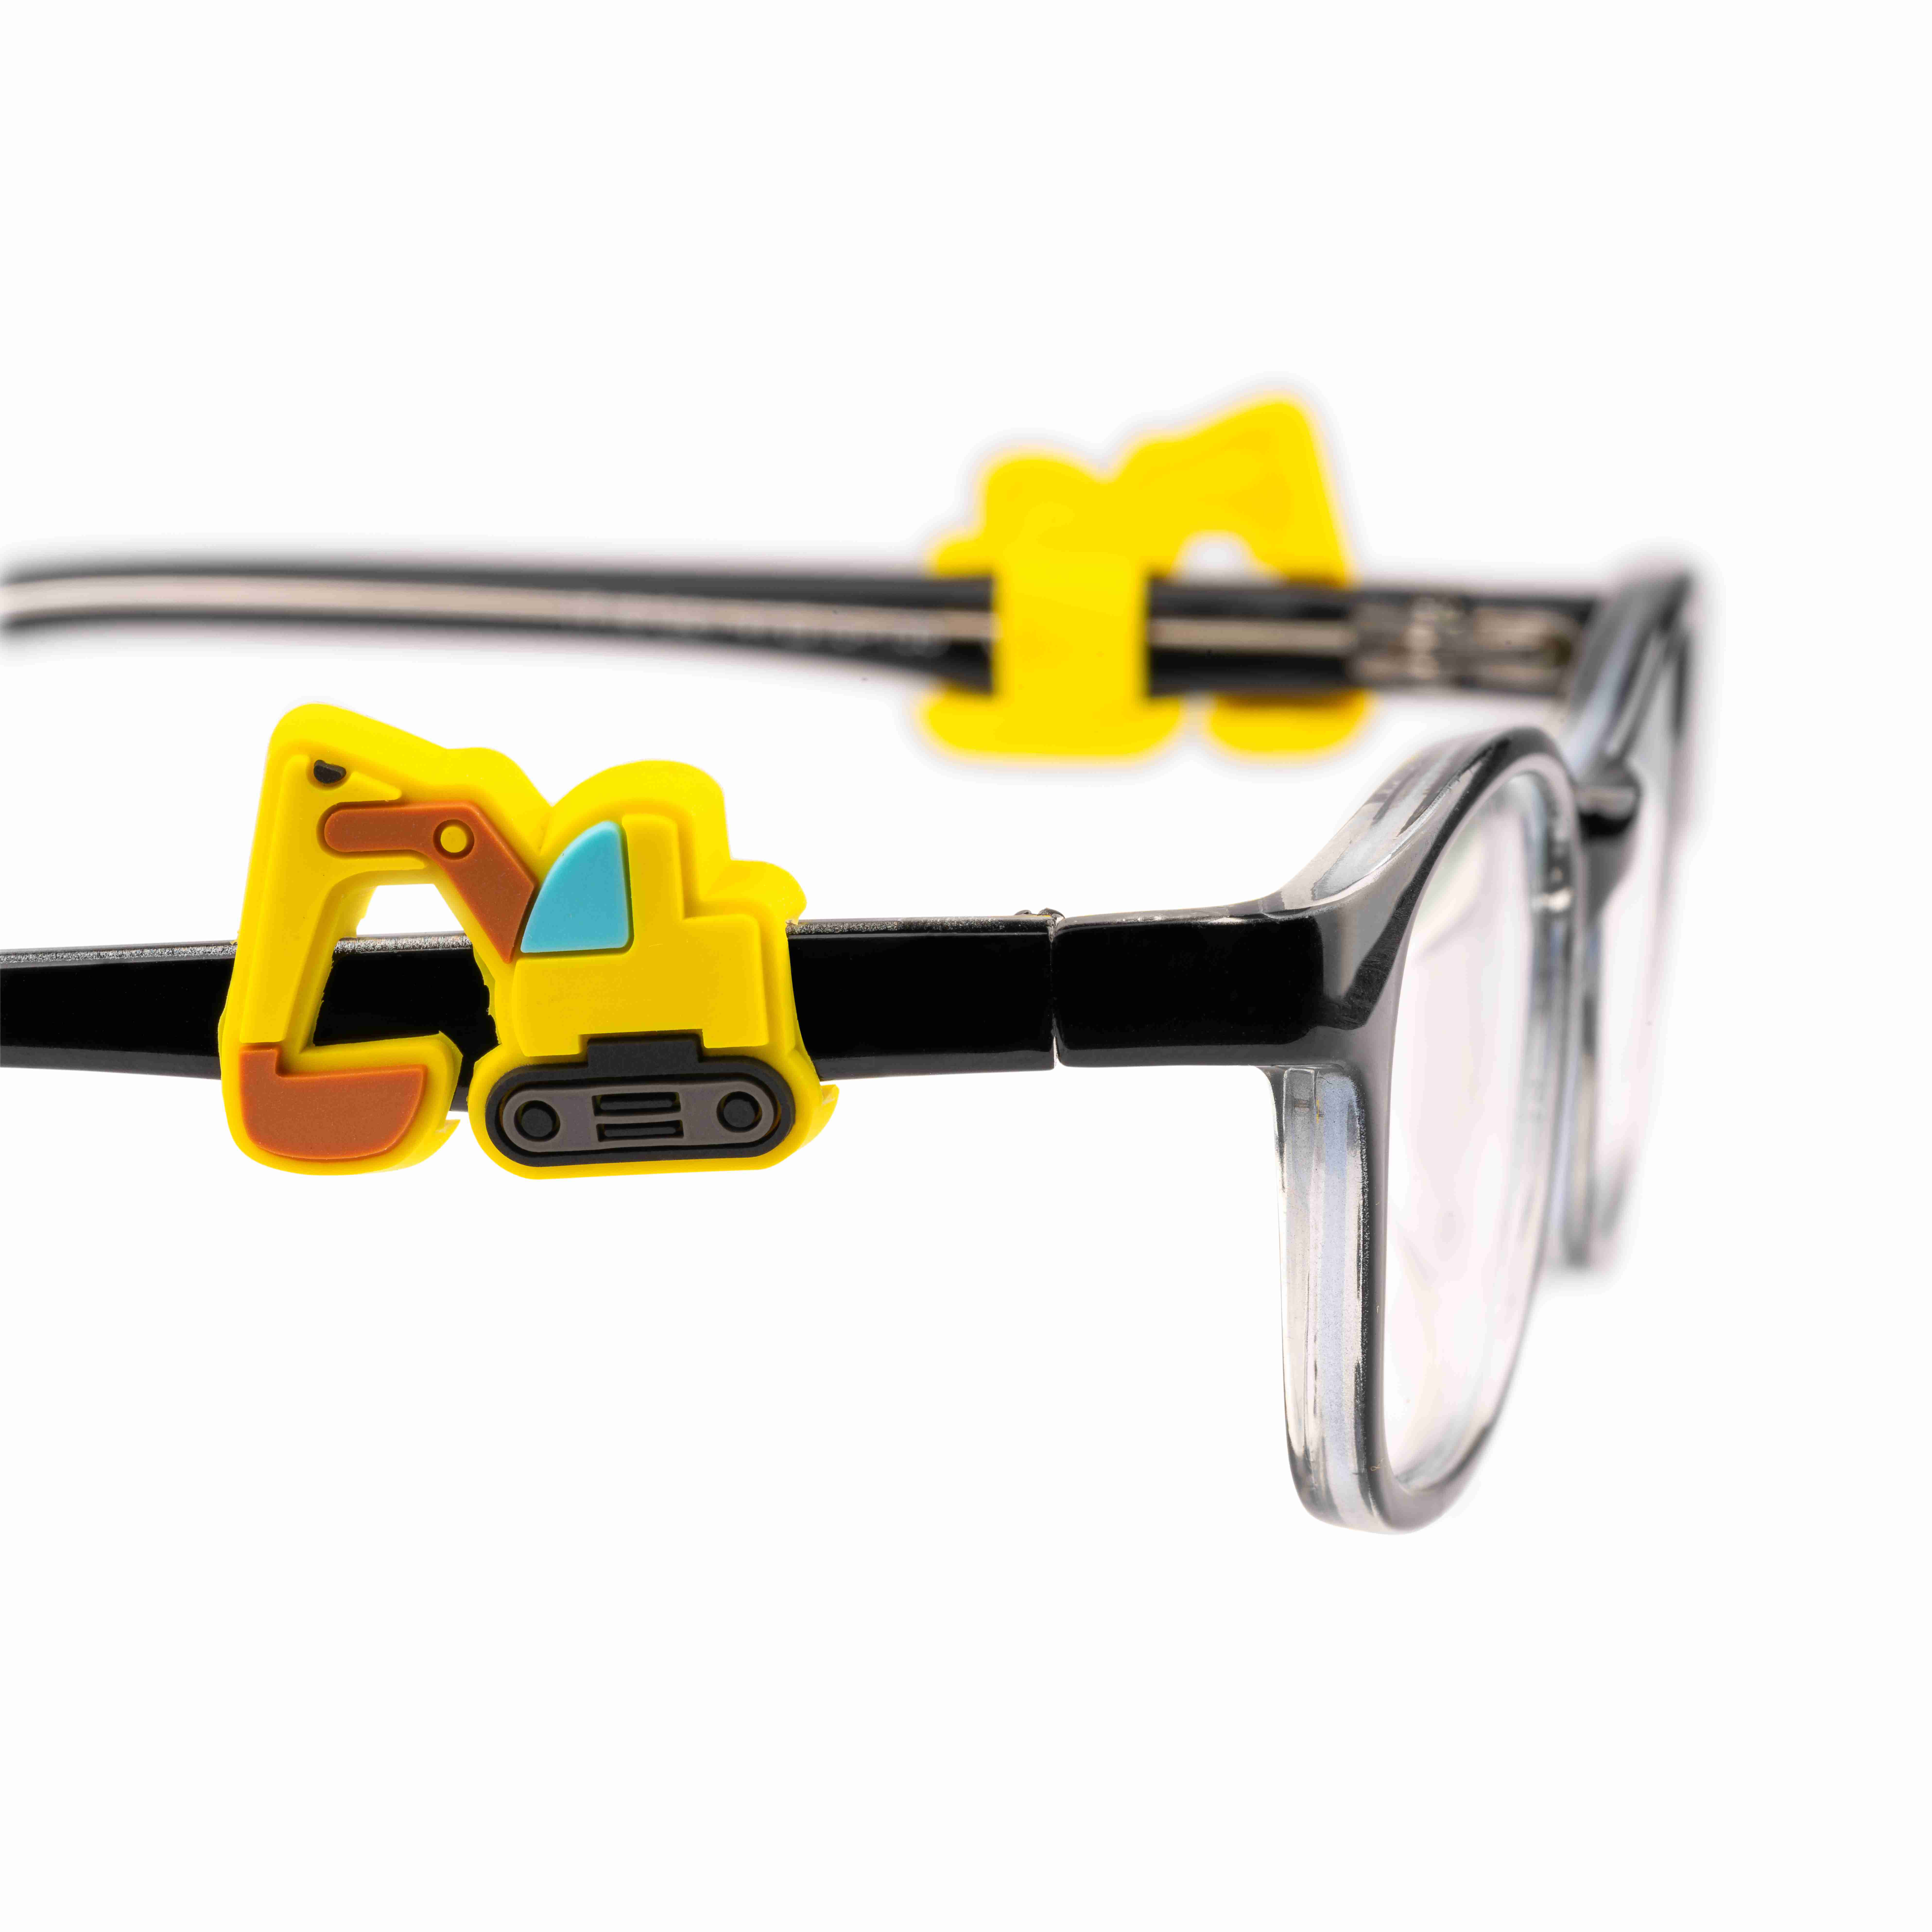 Eyewear-Charms-for-Kids-transport-2 with discount code